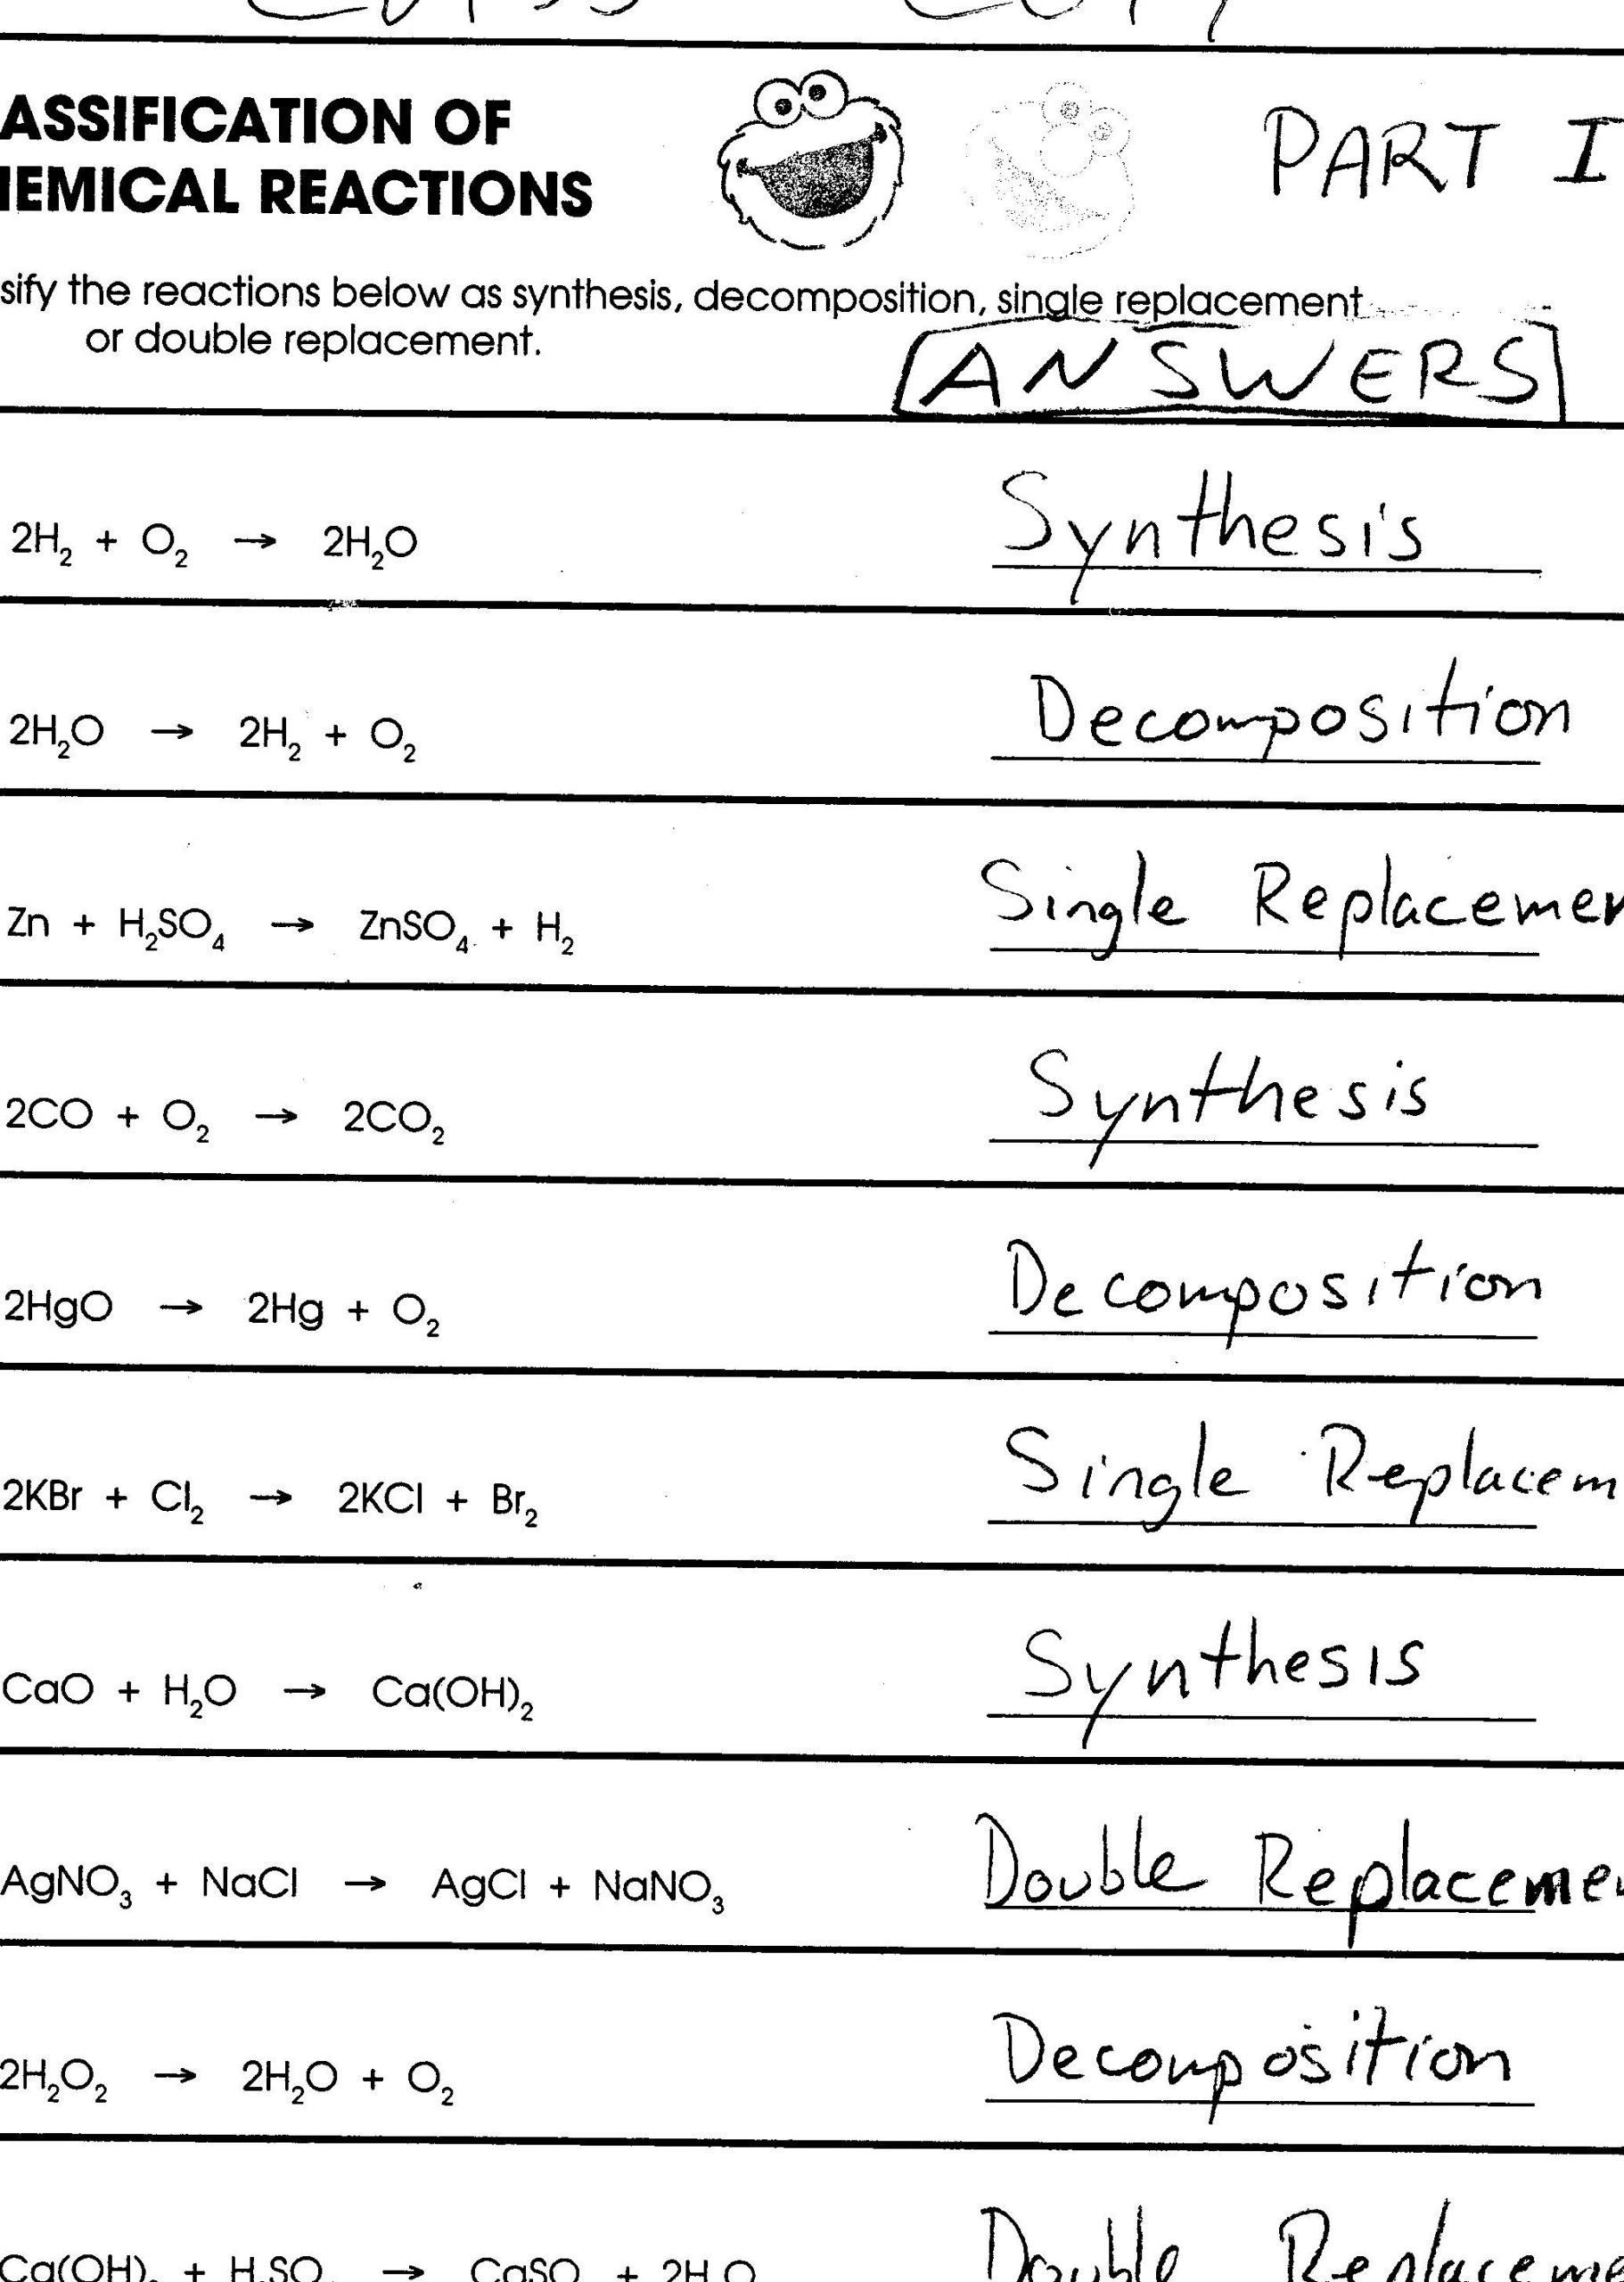 Types Of Reactions Worksheet Answers 10 Classifying Chemical Reactions Worksheet Answers